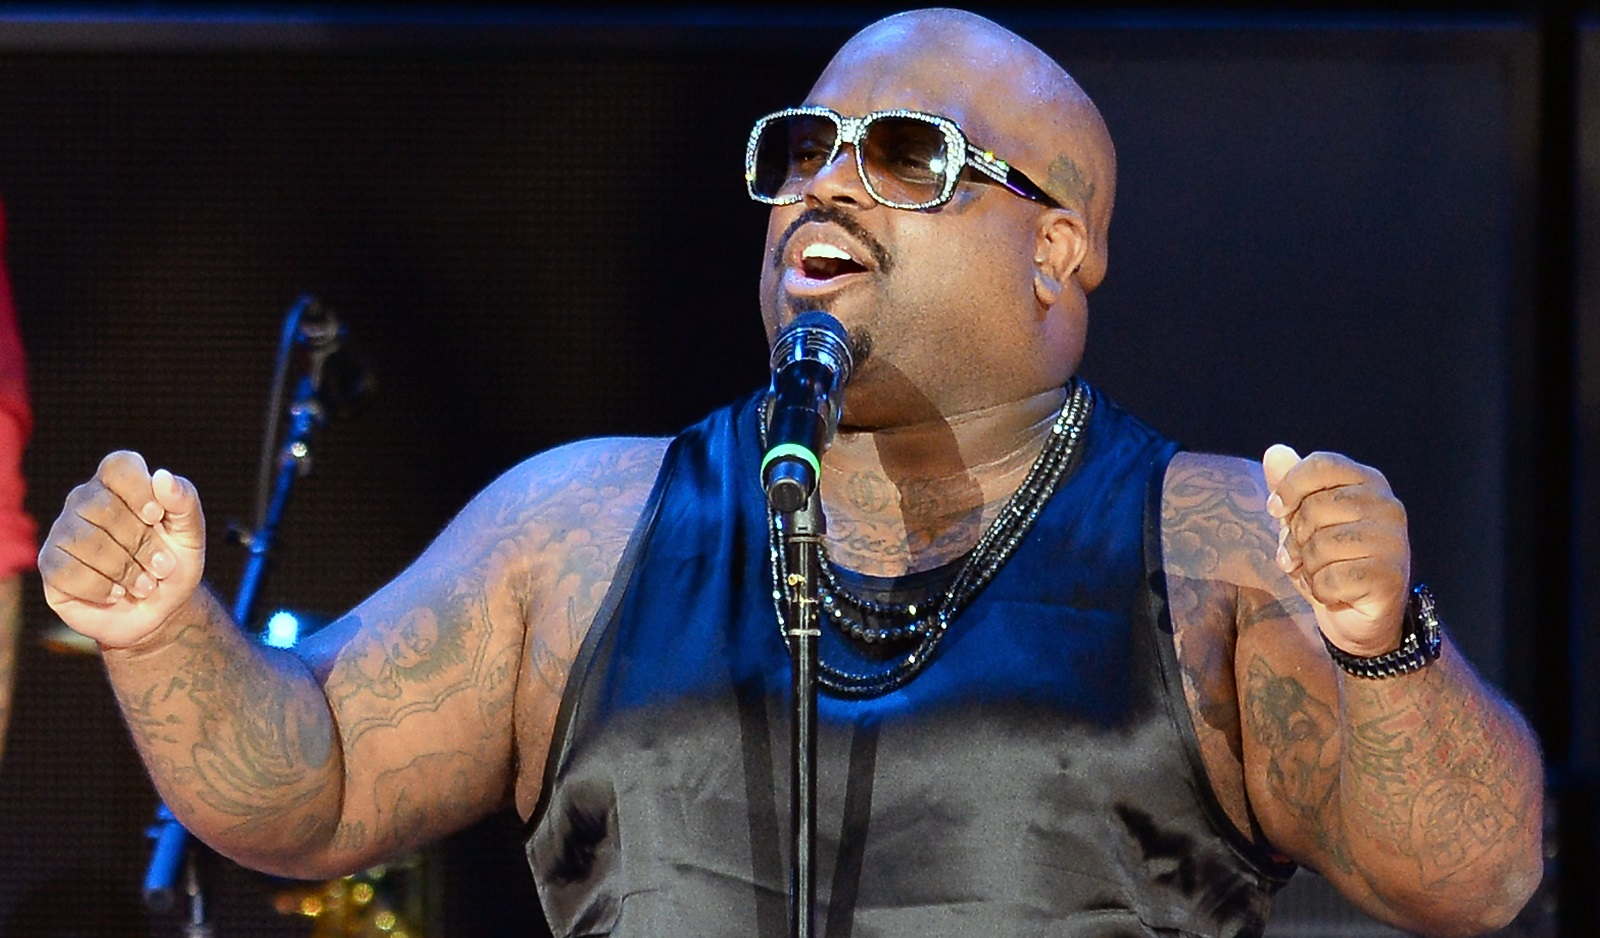 Goodie Mob and Gnarls Barkley member CeeLo Green will perform June 11 in Town Ballroom. (Getty Images)